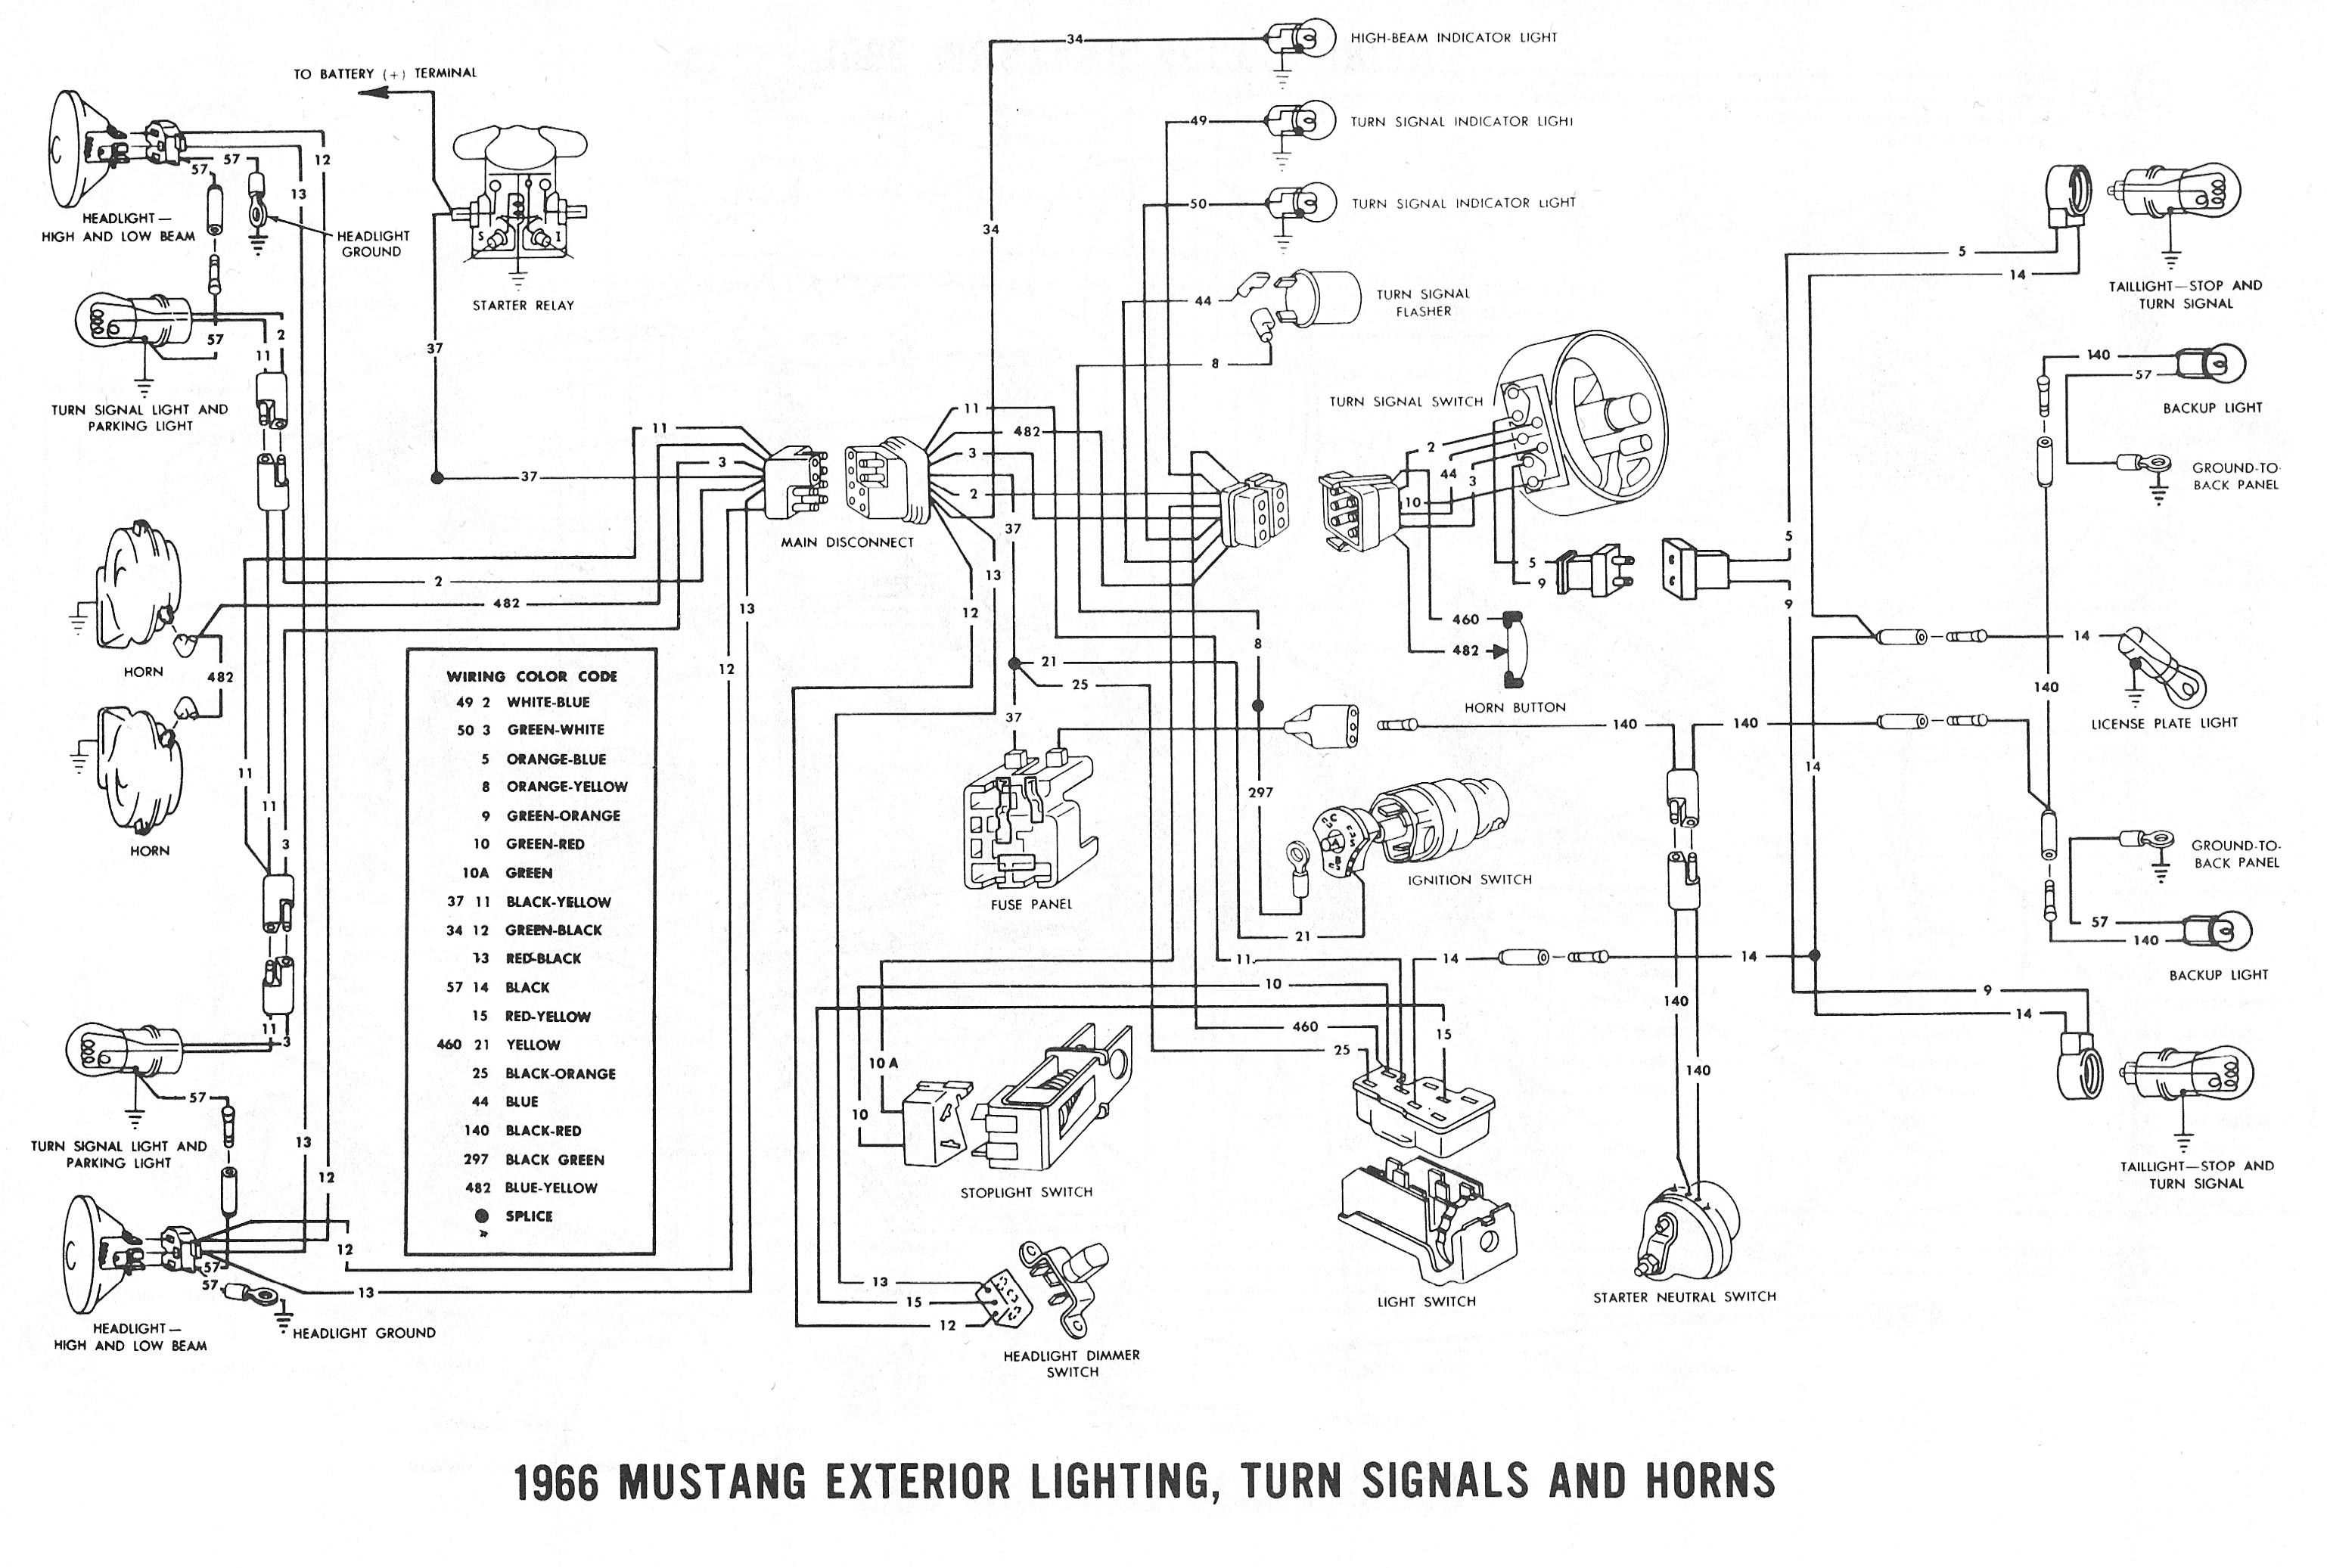 65 Mustang Wiring Schematic Library Pentium 2 Block Diagram Pdf 1967 Ford F100 Turn Signal Switch Schematics Rh Caltech Ctp Com